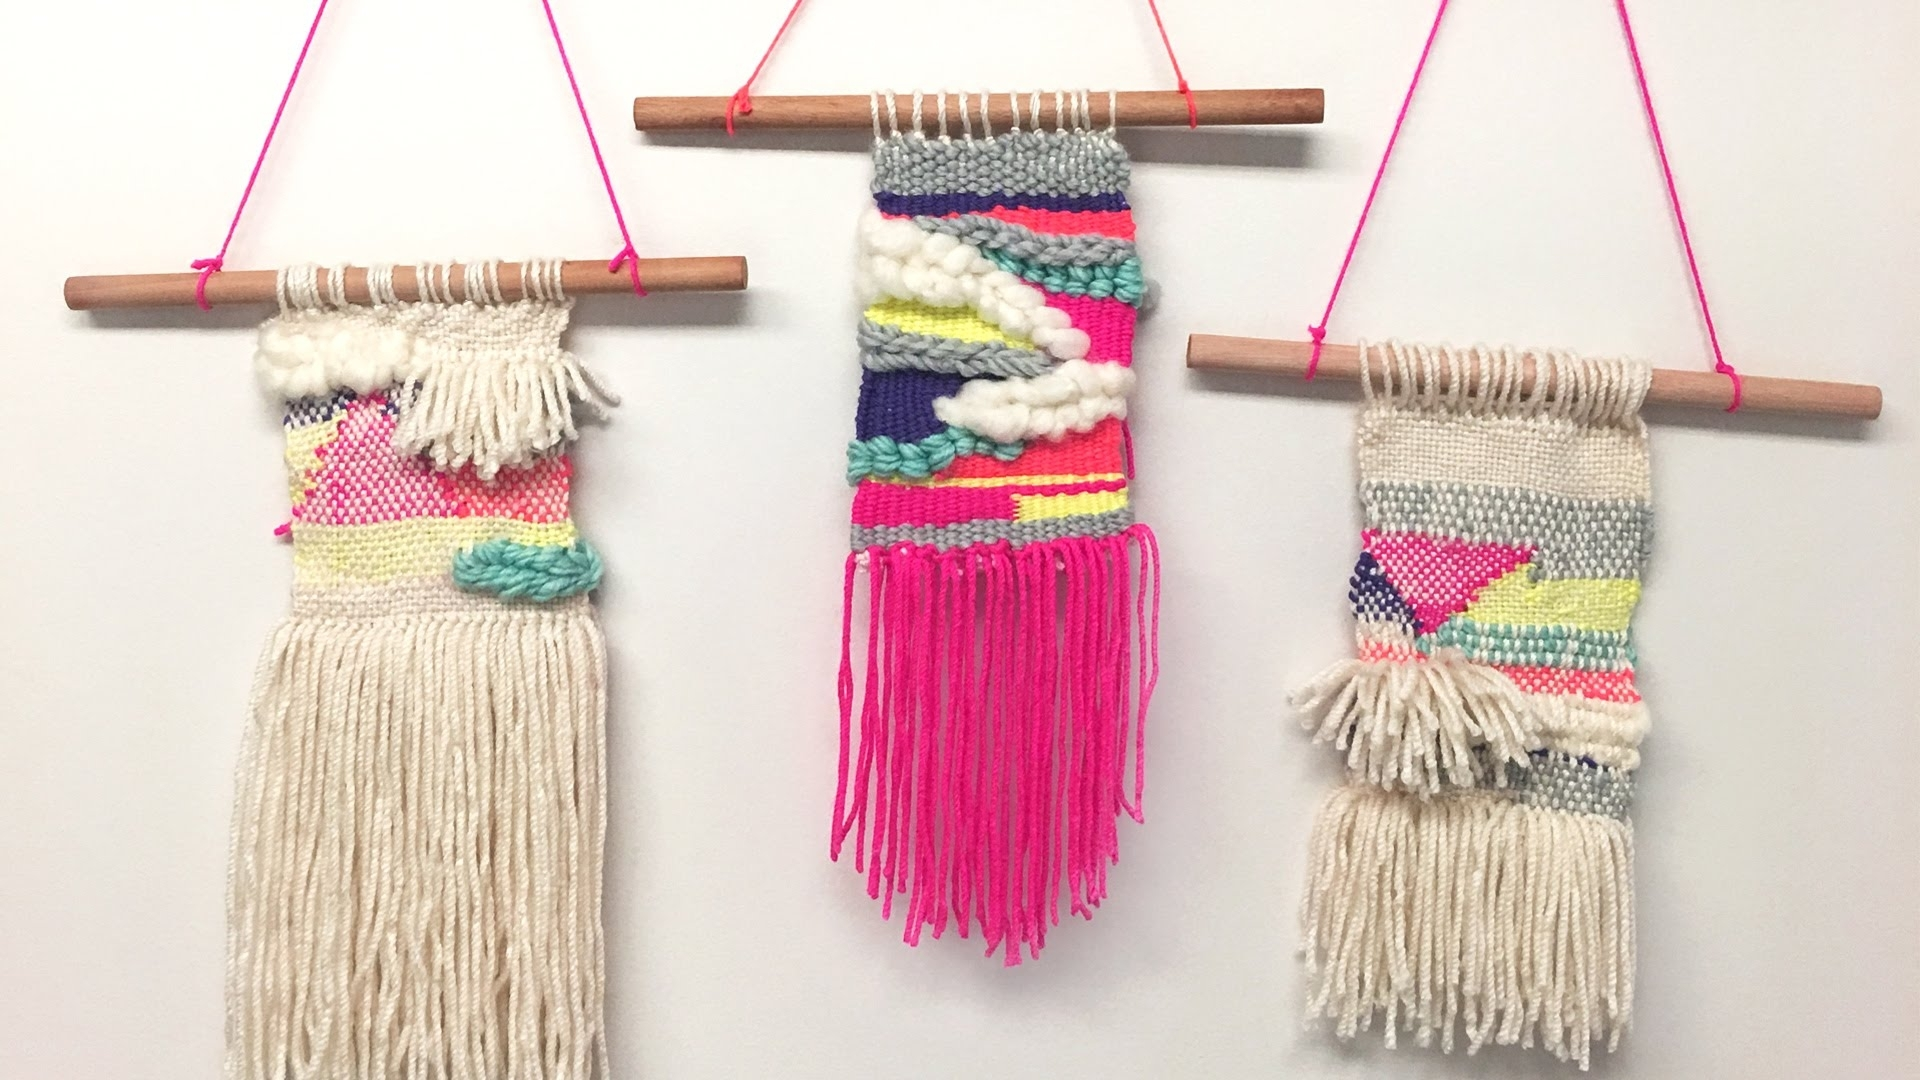 Whatdaymade Diy: Tissage Woven Wall Hagging – Youtube With 2018 Diy Textile Wall Art (View 15 of 15)